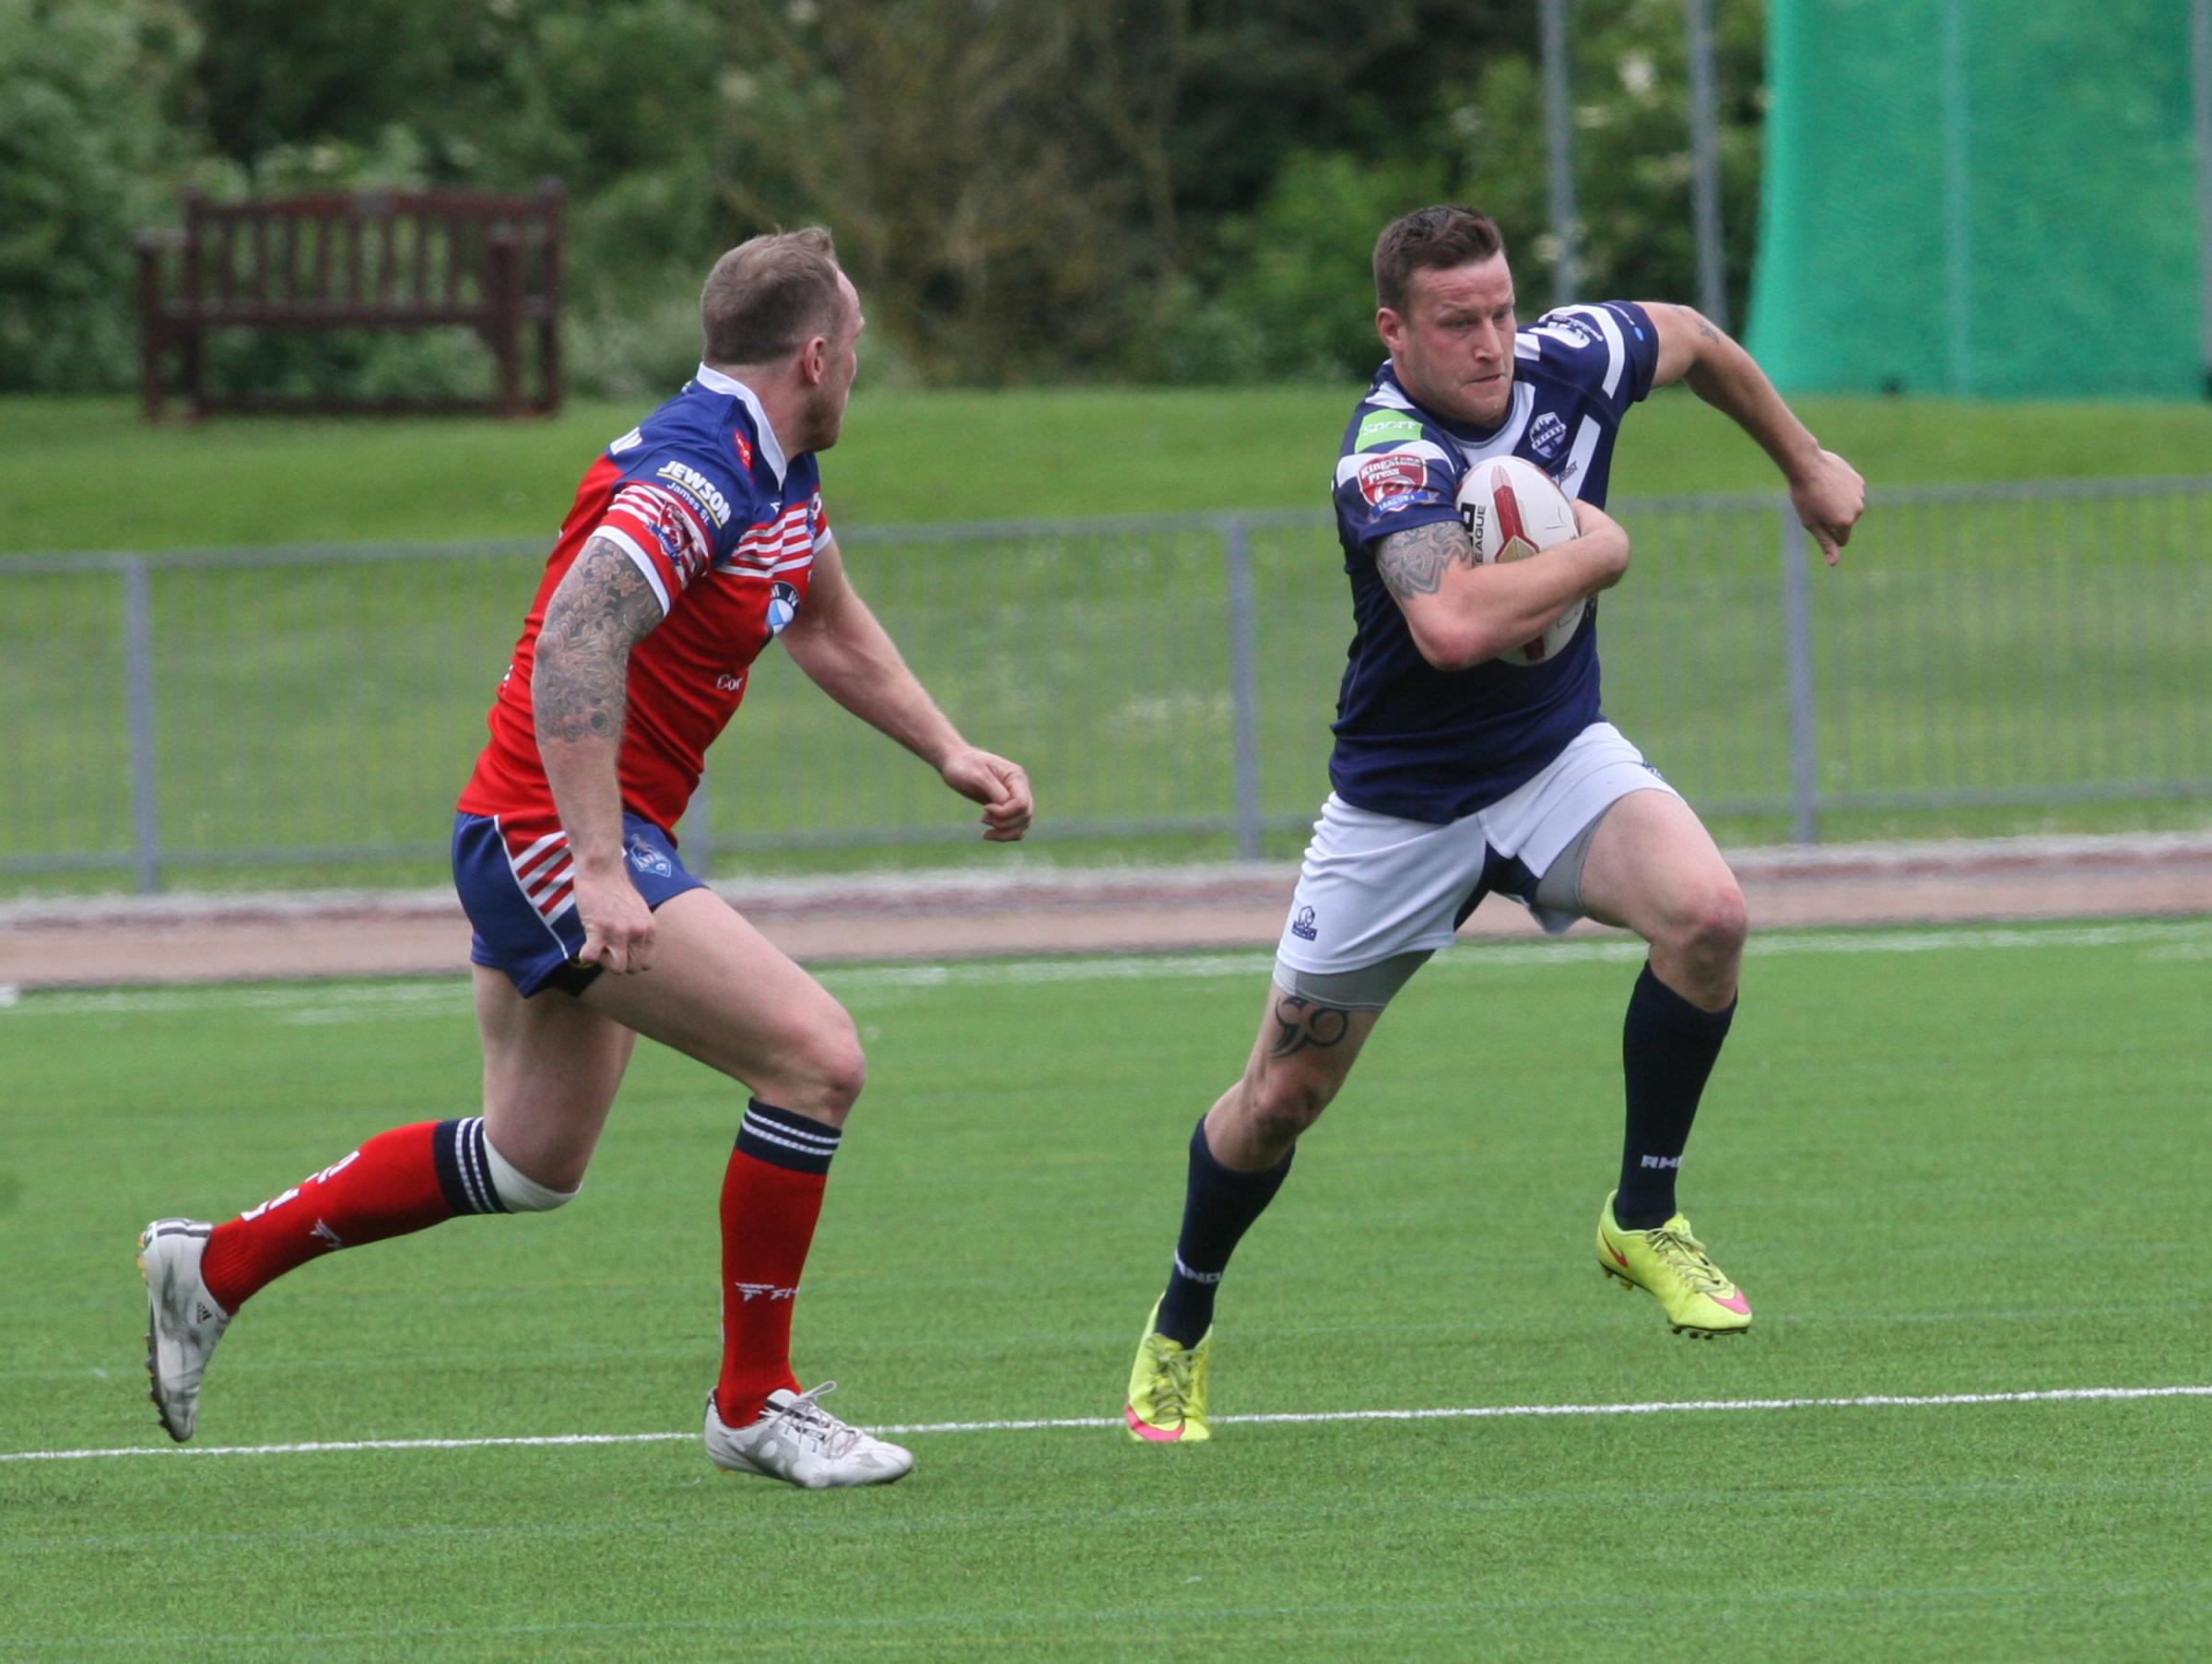 James Cryer scored a try for Oxford Picture: Steve Wheeler